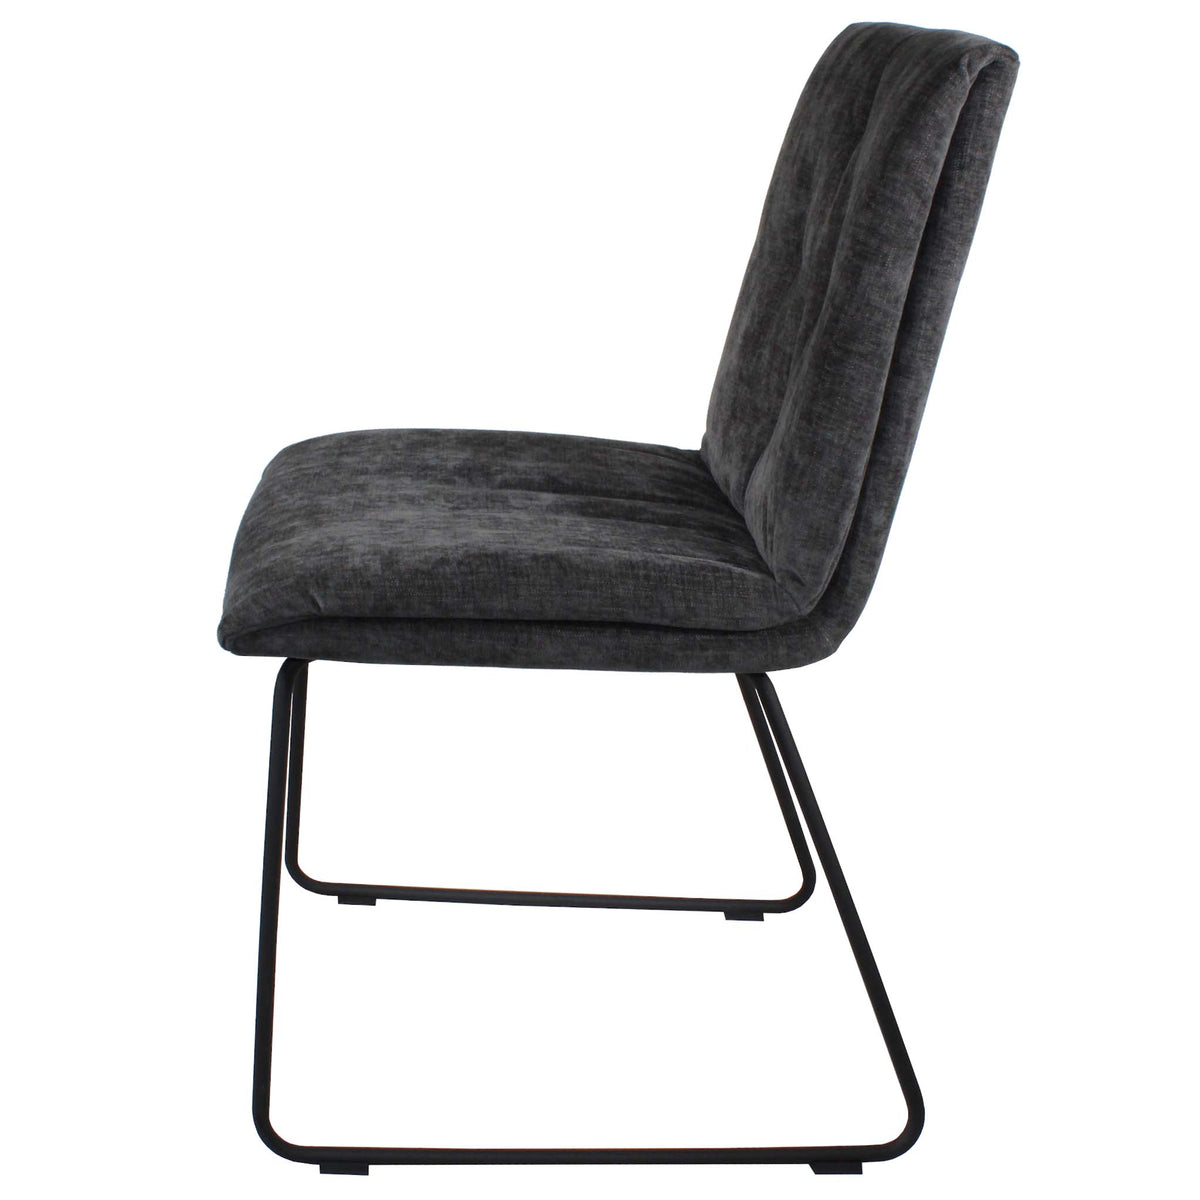 Side view of the Dark Grey Hadley Dining Chair from Roseland Furniture